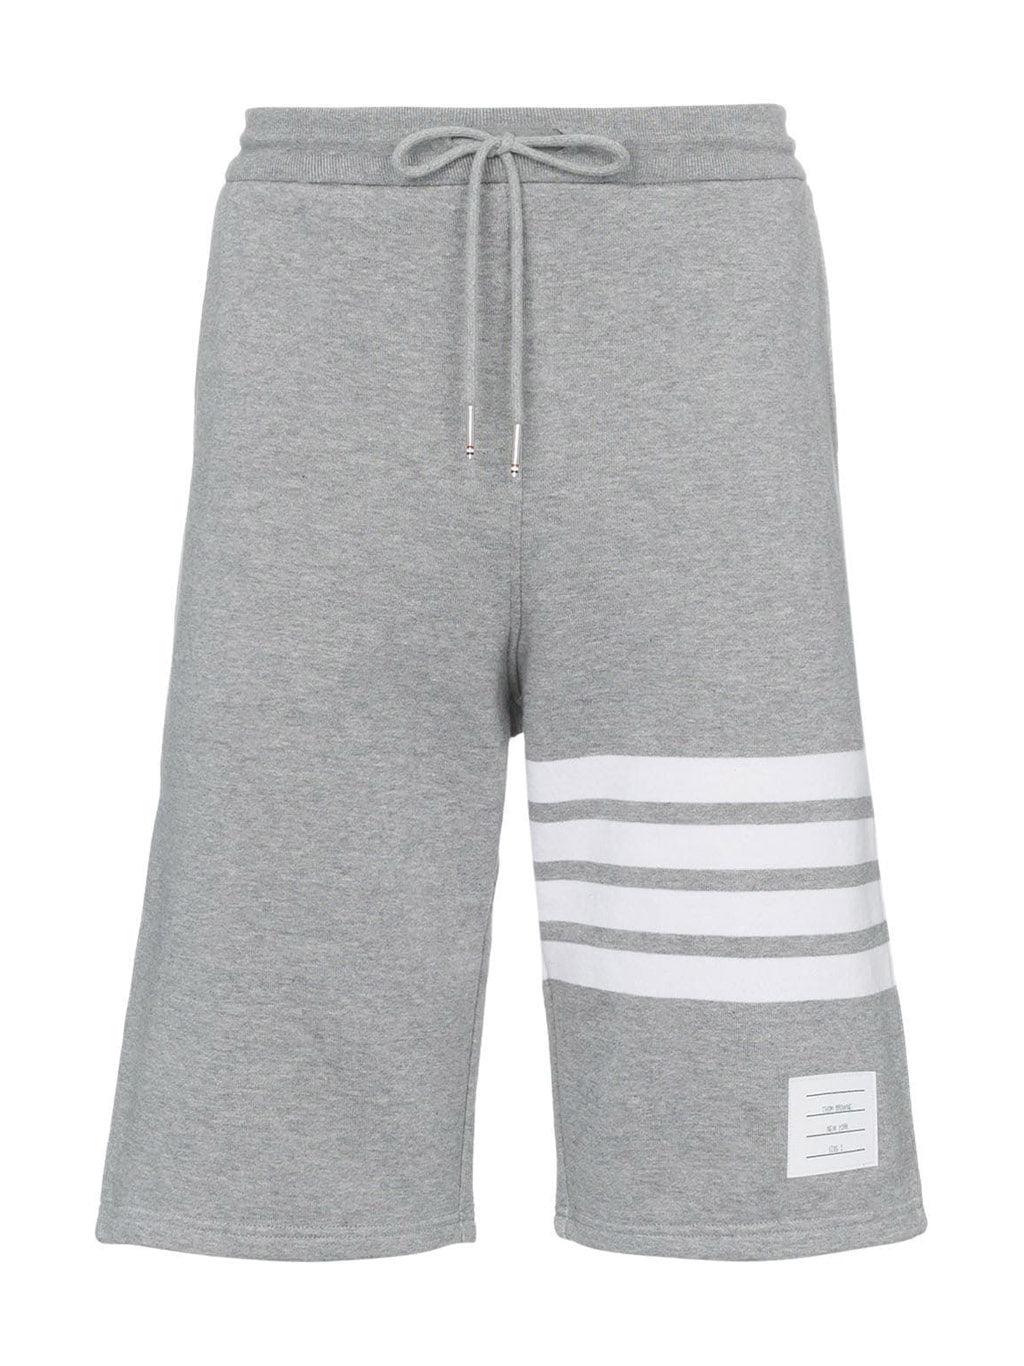 Grey 4-Bar Jersey Sweatshorts